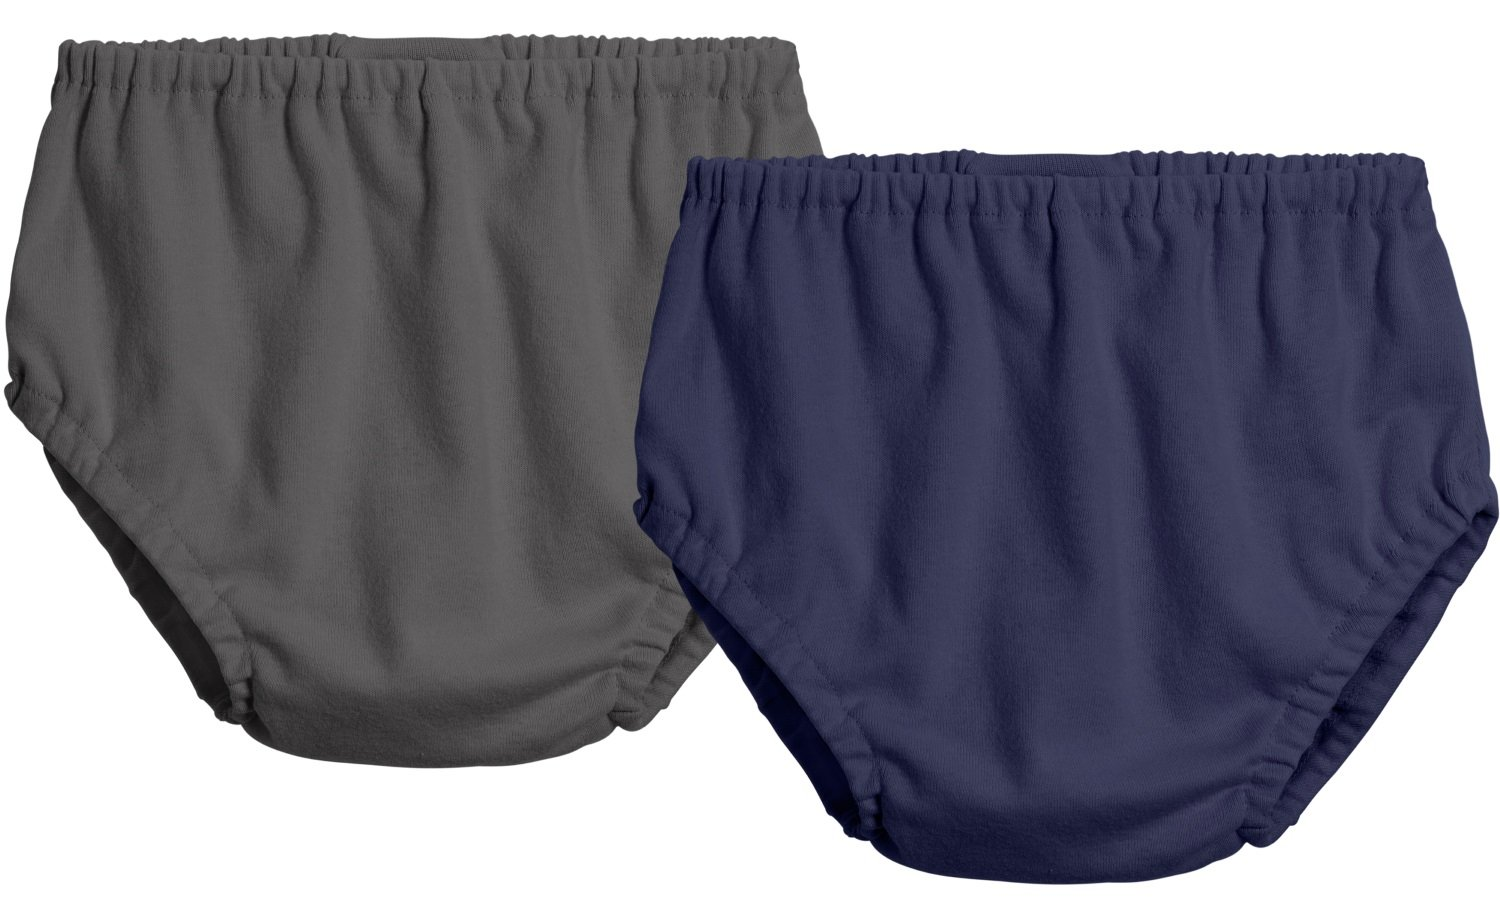 City Threads 2-Pack Baby Girls' and Baby Boys' Unisex Diaper Covers Bloomers Soft Cotton, Charcoal/Navy, 2T